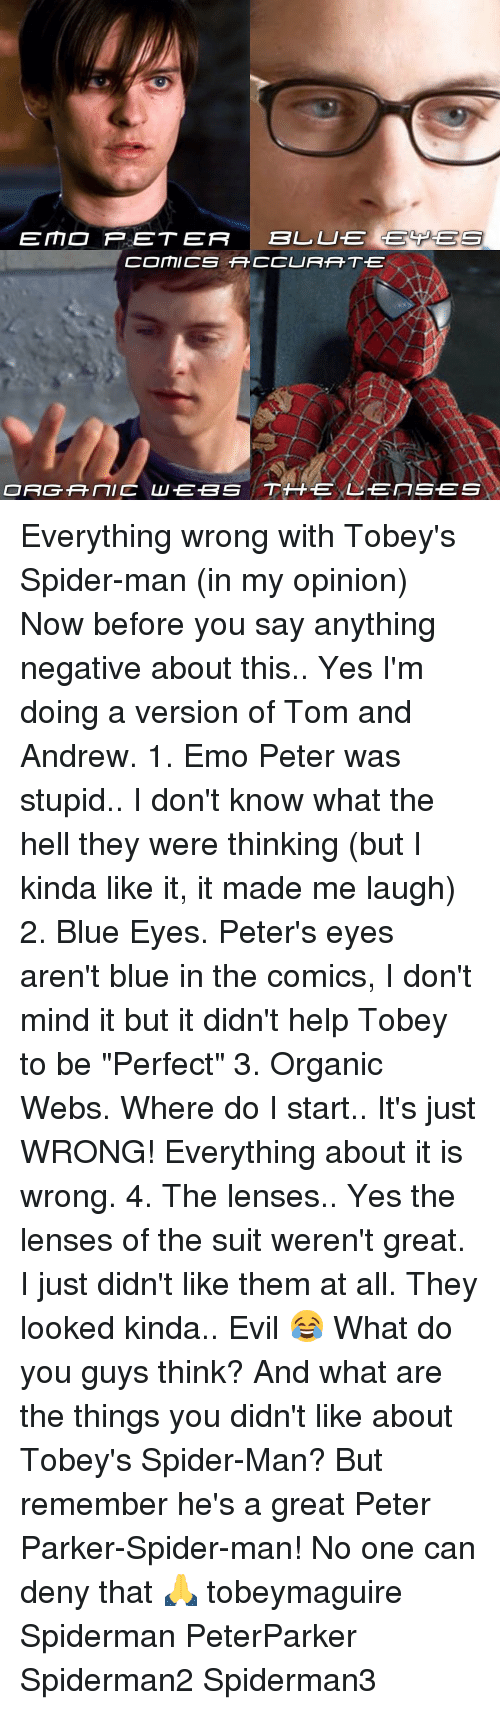 "Blue In: EE MD P ET ER  BLL LUTE GECPGE S  COMICS TFCCURAHT.E  ORGANIC LU EBS TH EXL EITSES Everything wrong with Tobey's Spider-man (in my opinion) Now before you say anything negative about this.. Yes I'm doing a version of Tom and Andrew. 1. Emo Peter was stupid.. I don't know what the hell they were thinking (but I kinda like it, it made me laugh) 2. Blue Eyes. Peter's eyes aren't blue in the comics, I don't mind it but it didn't help Tobey to be ""Perfect"" 3. Organic Webs. Where do I start.. It's just WRONG! Everything about it is wrong. 4. The lenses.. Yes the lenses of the suit weren't great. I just didn't like them at all. They looked kinda.. Evil 😂 What do you guys think? And what are the things you didn't like about Tobey's Spider-Man? But remember he's a great Peter Parker-Spider-man! No one can deny that 🙏 tobeymaguire Spiderman PeterParker Spiderman2 Spiderman3"